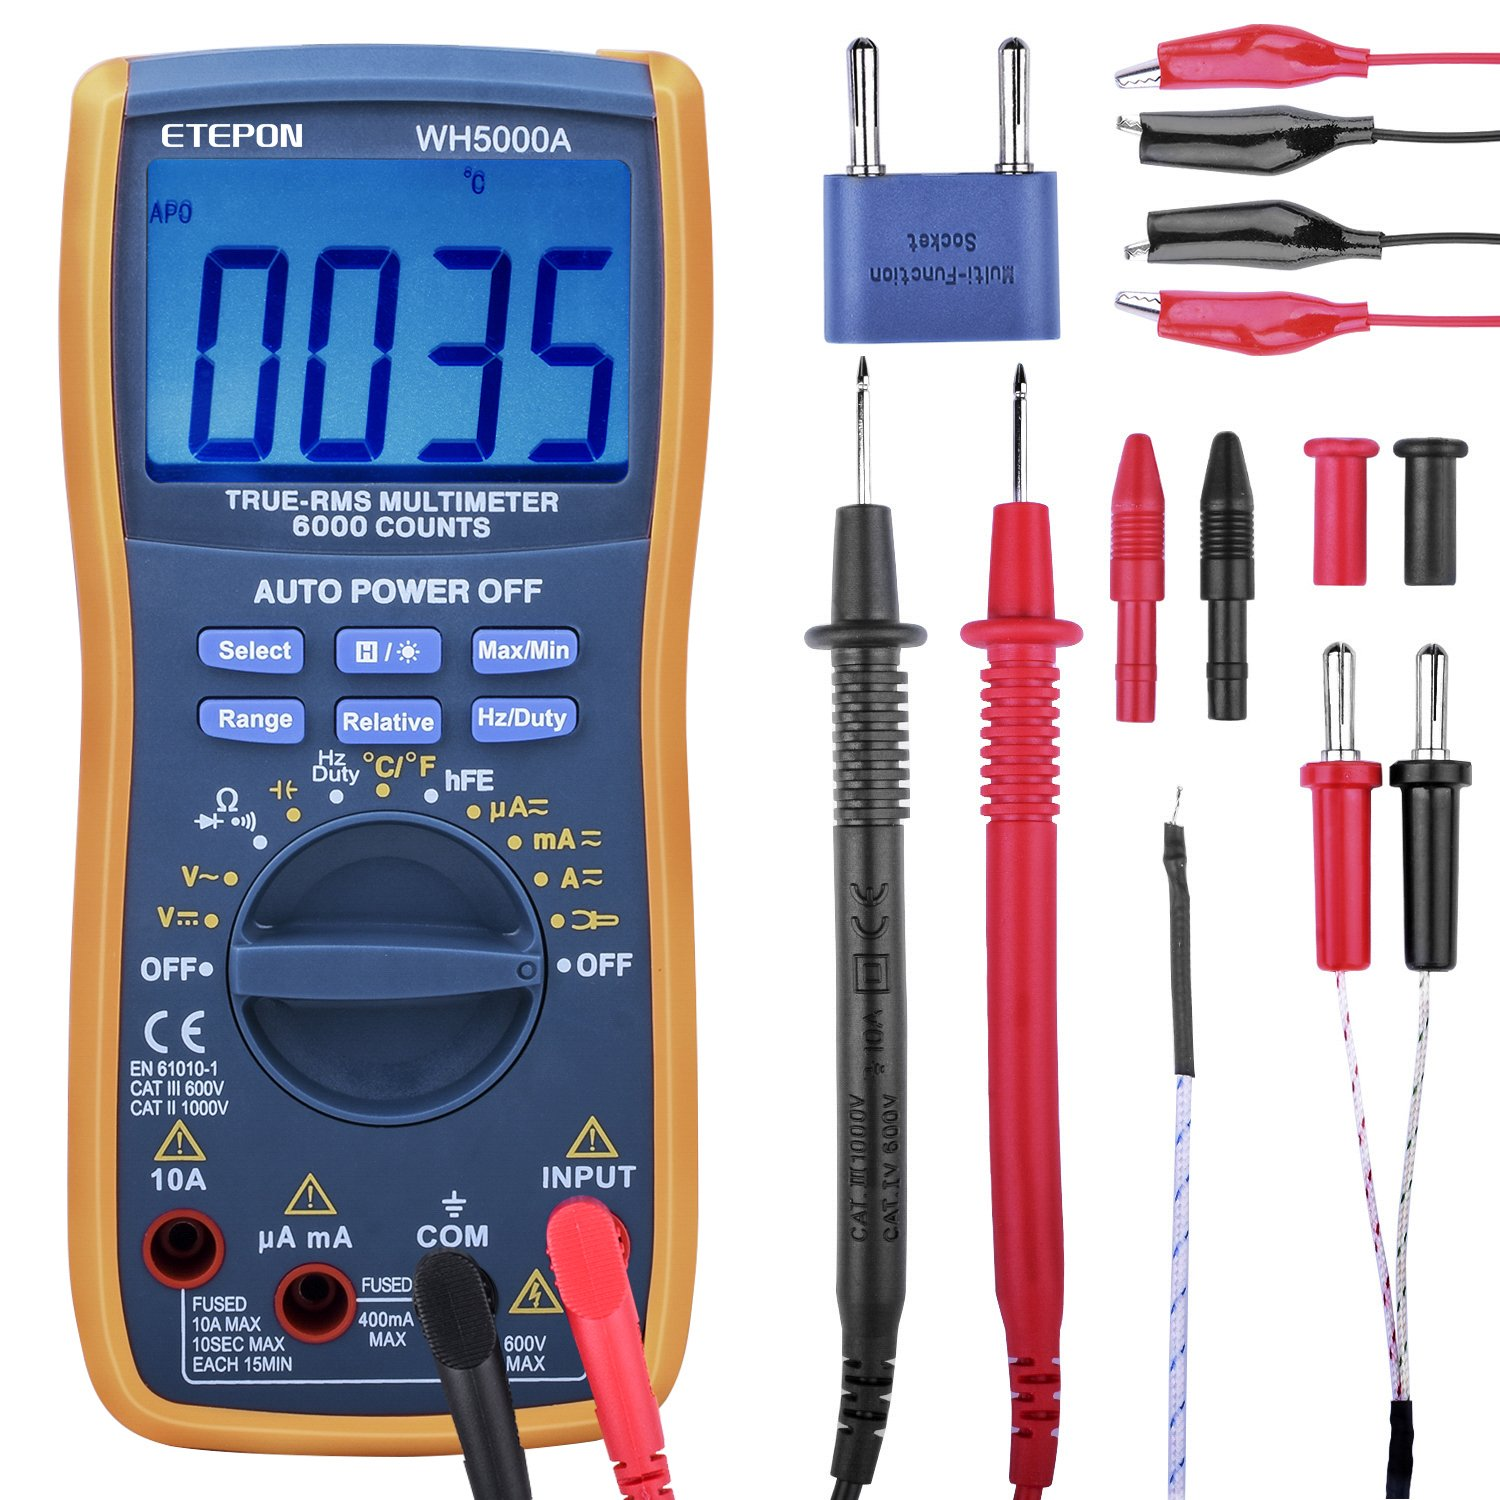 Multimeter, ETEPON TRMS 6000 Counts Digital Ohmmeters Manual and Auto Ranging, Measures Voltage, Current, Resistance, Continuity, Capacitance, Frequency; Test Diodes, Transistors, Temperature